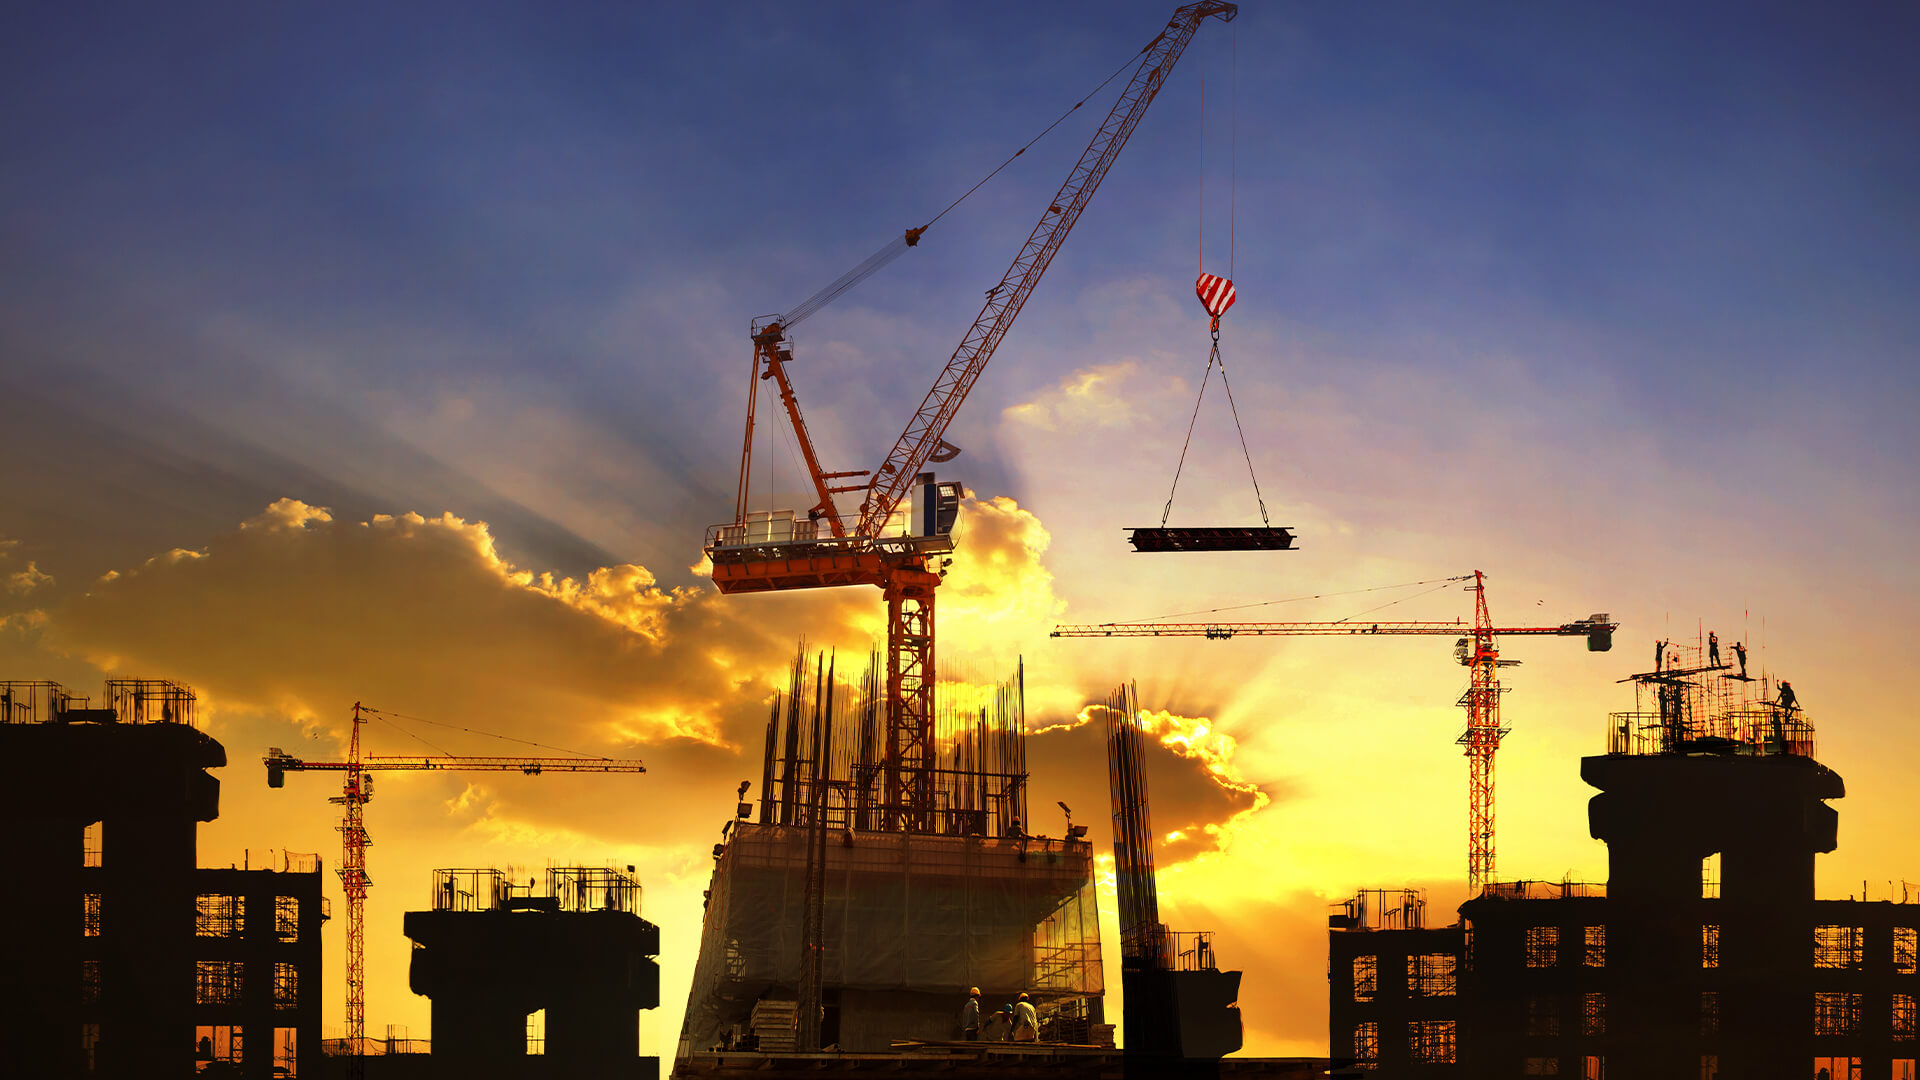 silhouette of high rise construction against a sunset